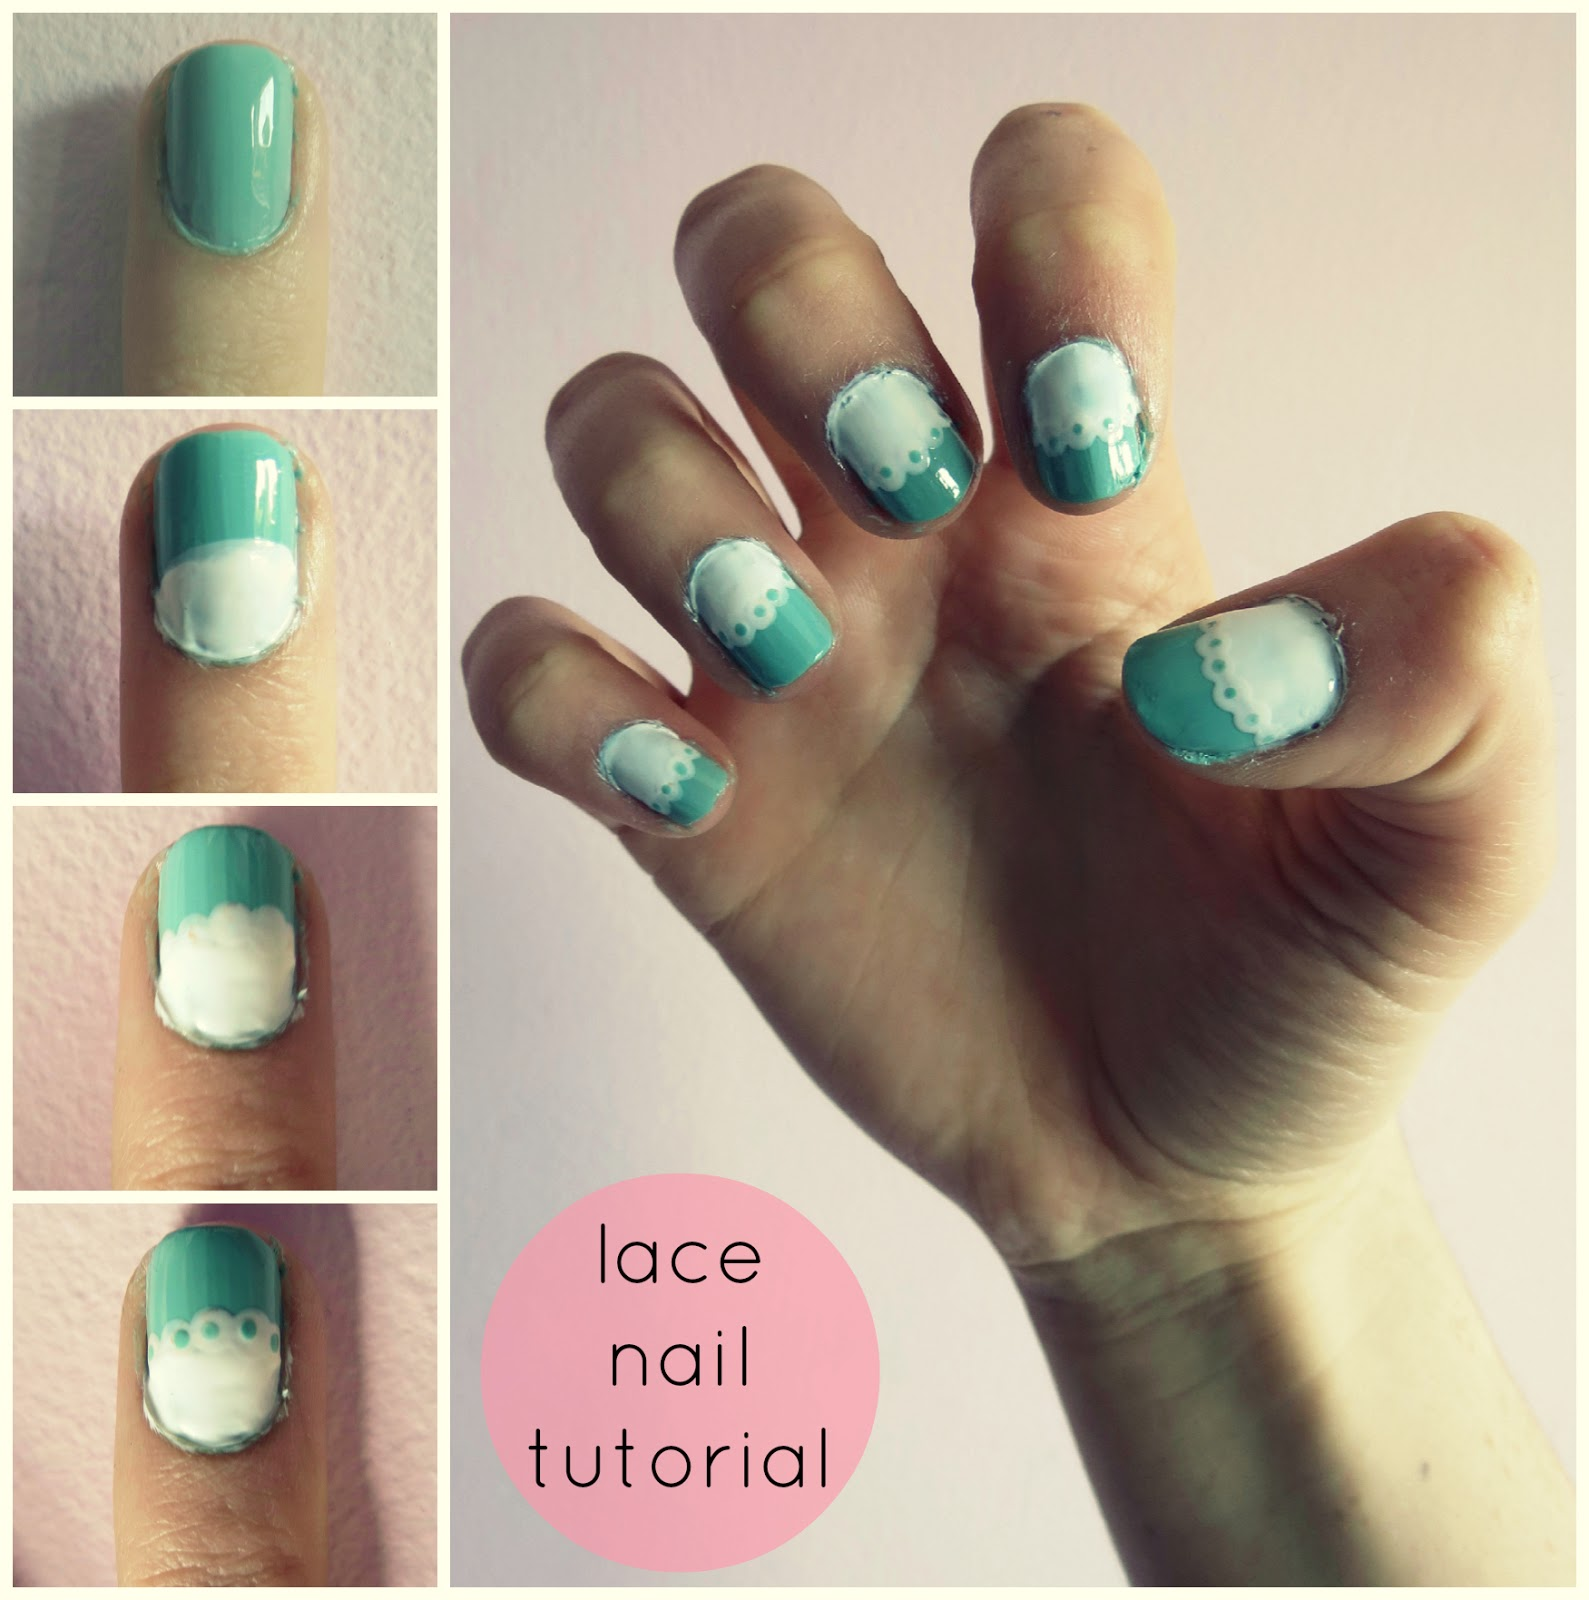 lace+doily+floral+nails+nail+art+easy+diy+blog+tutorial+free+mint+candy+apple+essie+white.jpg